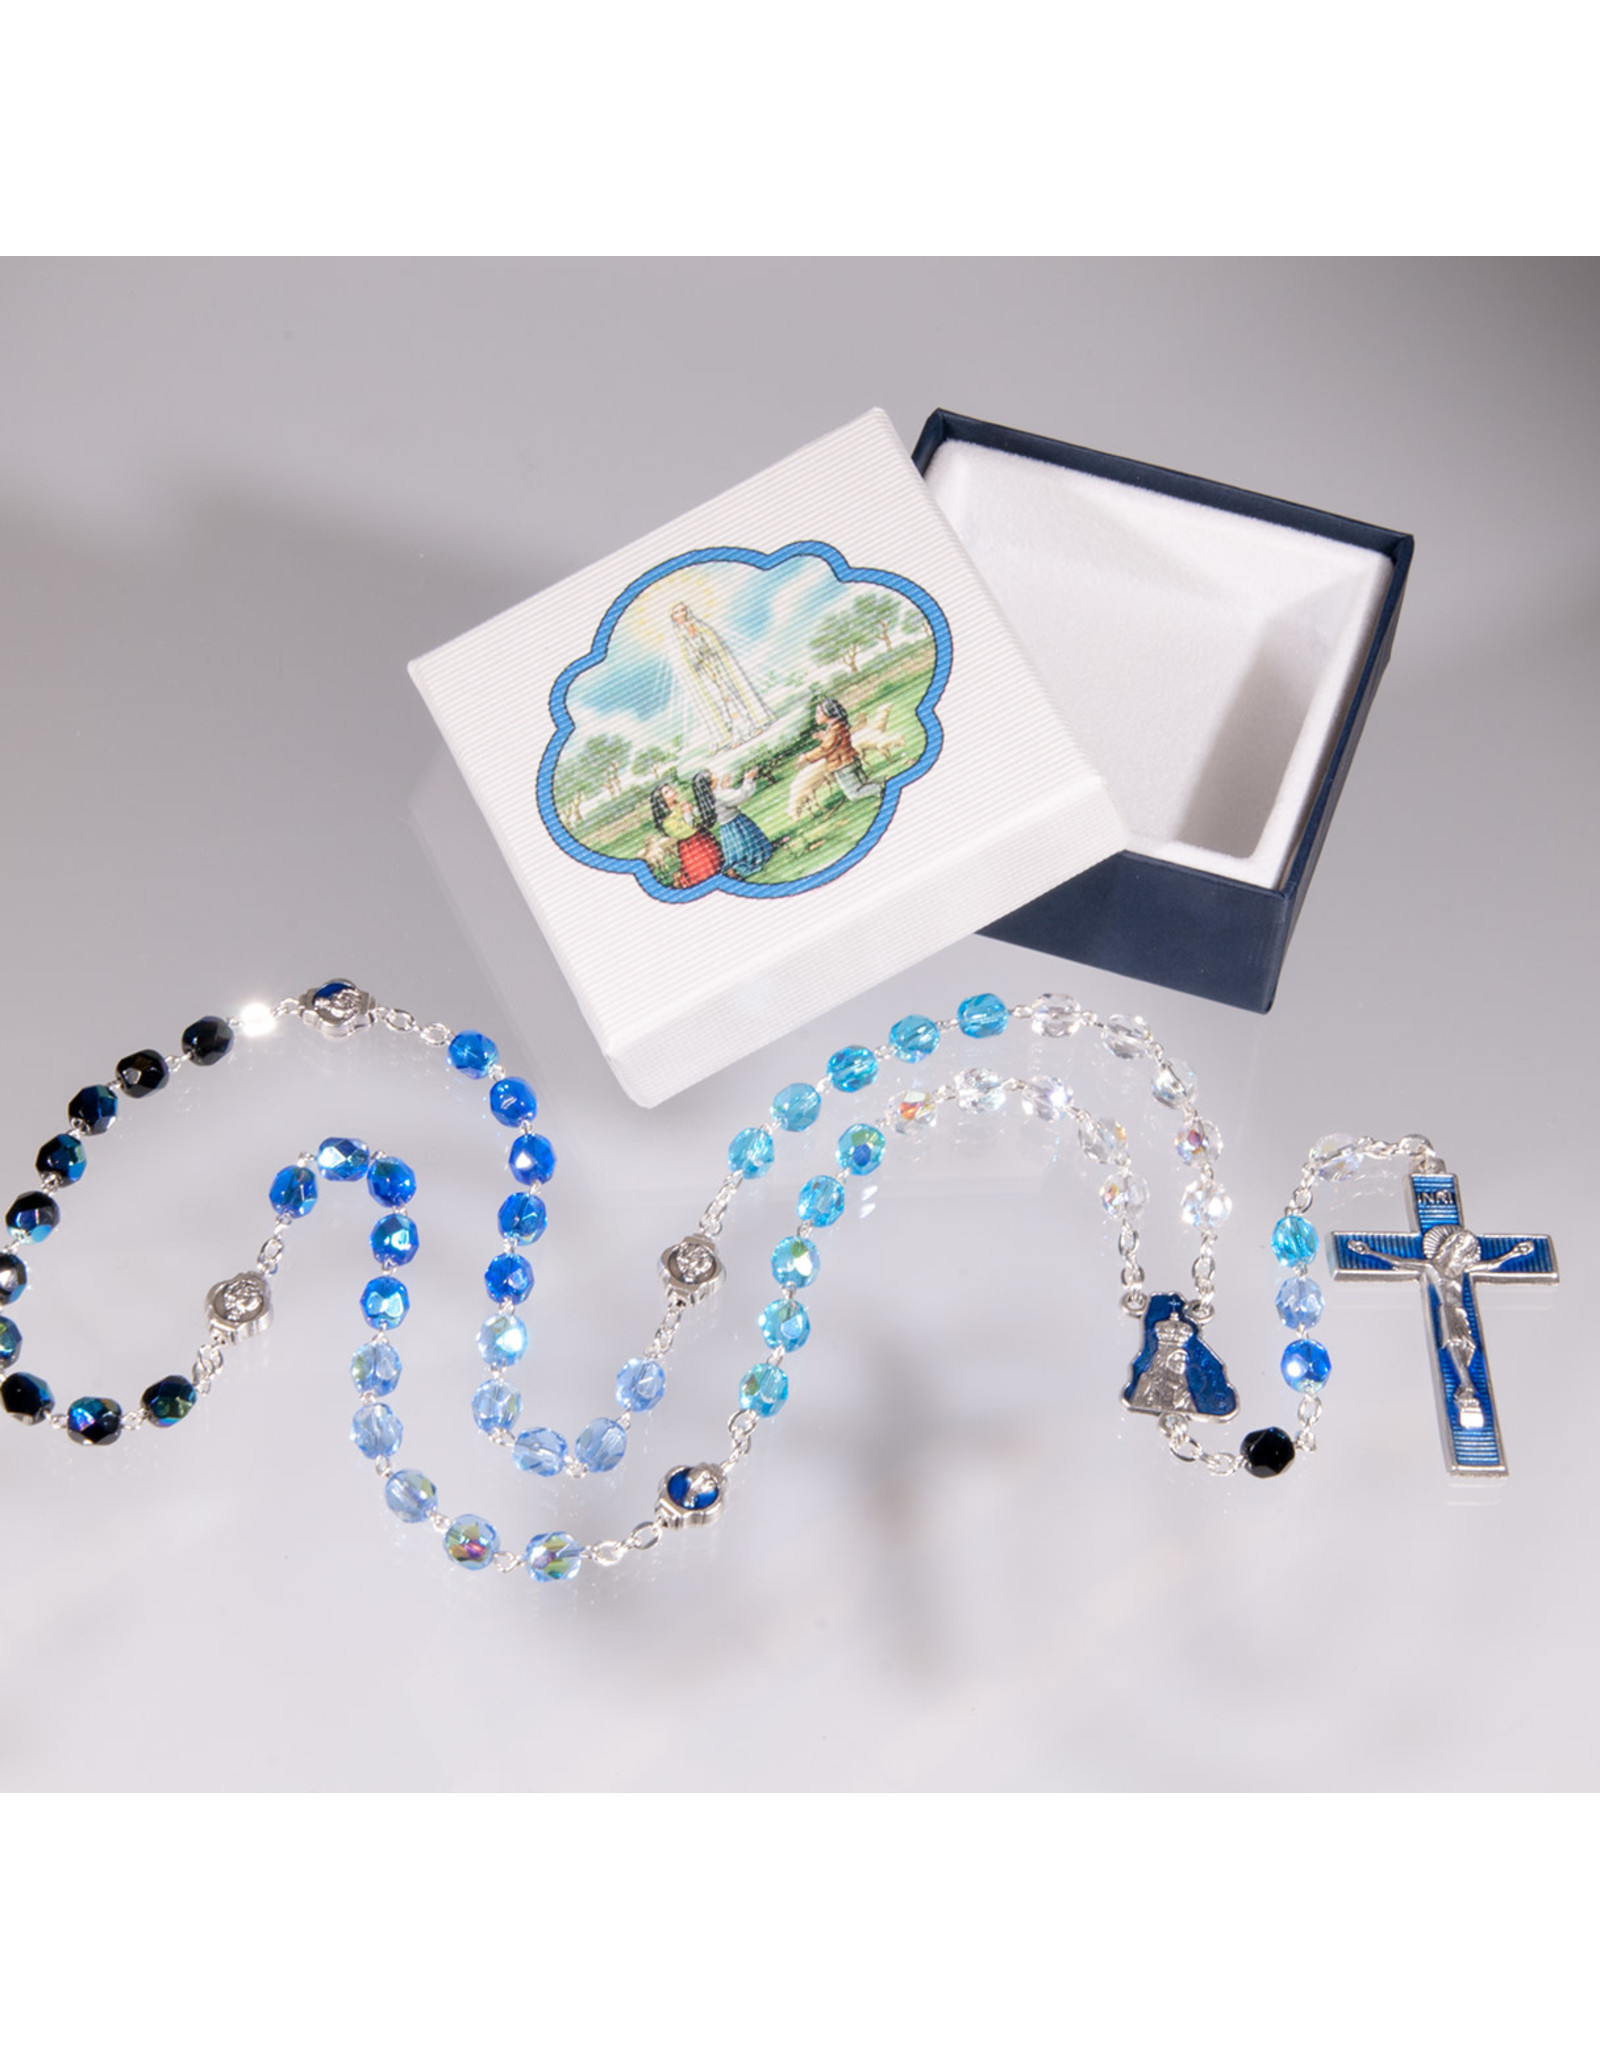 Hirten 5x6 mm Glass Bead Our Lady of Fatima Rosary with Enameled Cross